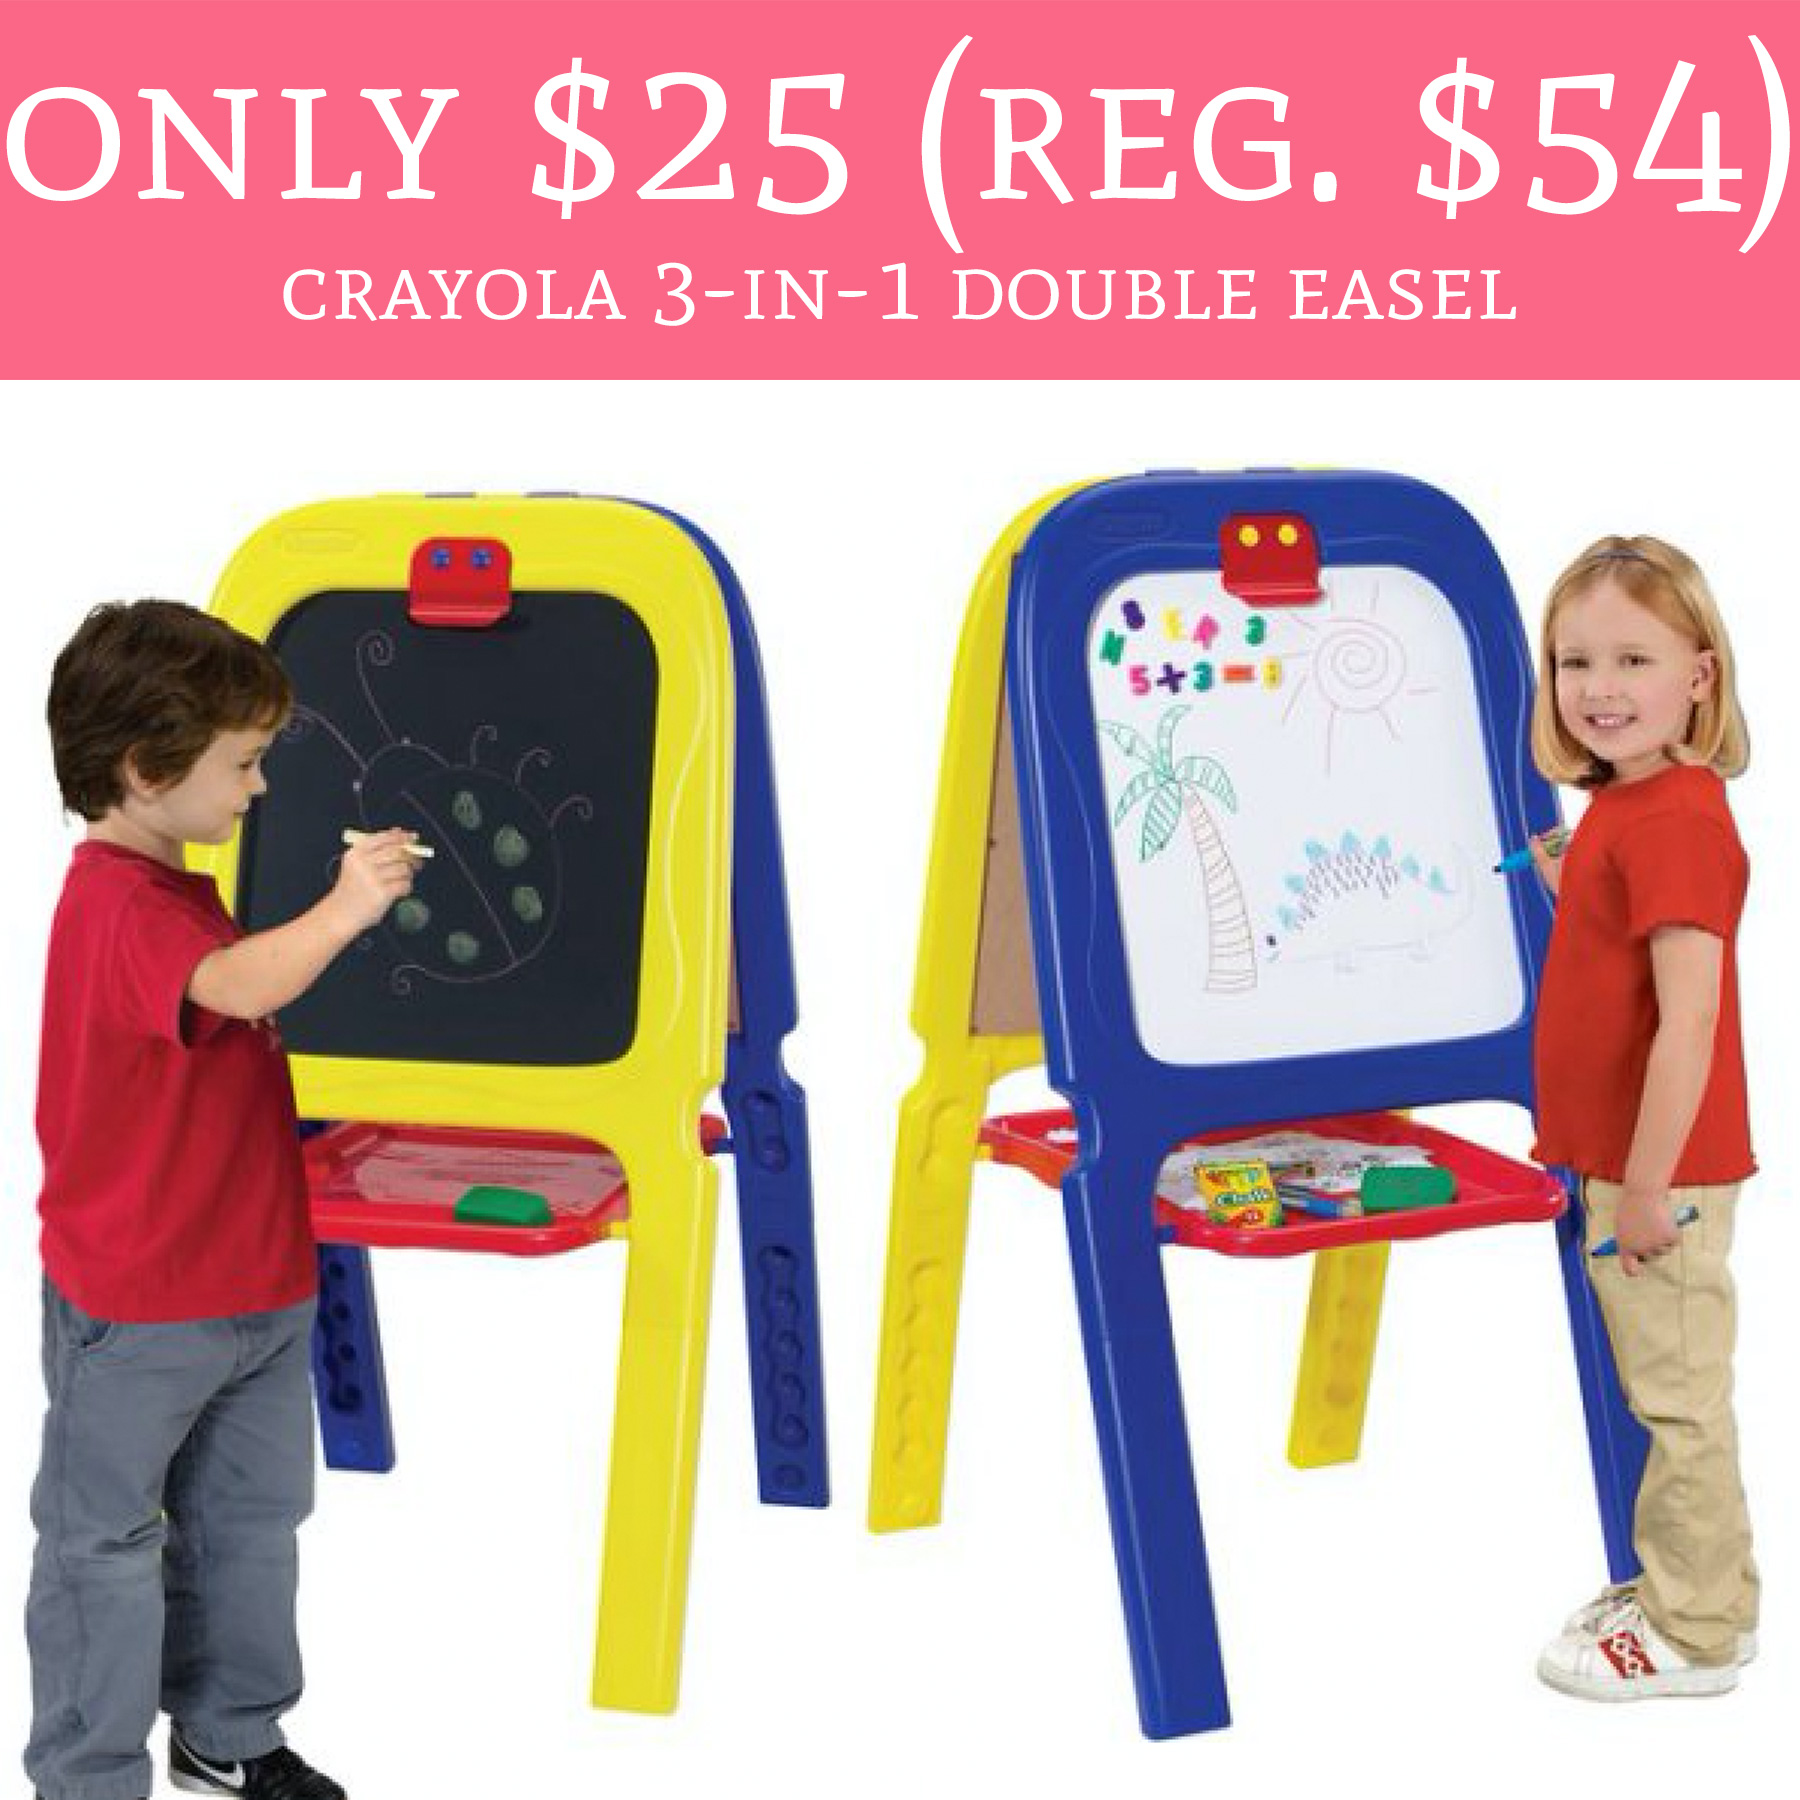 crayola 3 in 1 double easel with magnetic letters wow only 25 regular 54 crayola 3 in 1 sided 21223 | crayola 3 in 1 easel